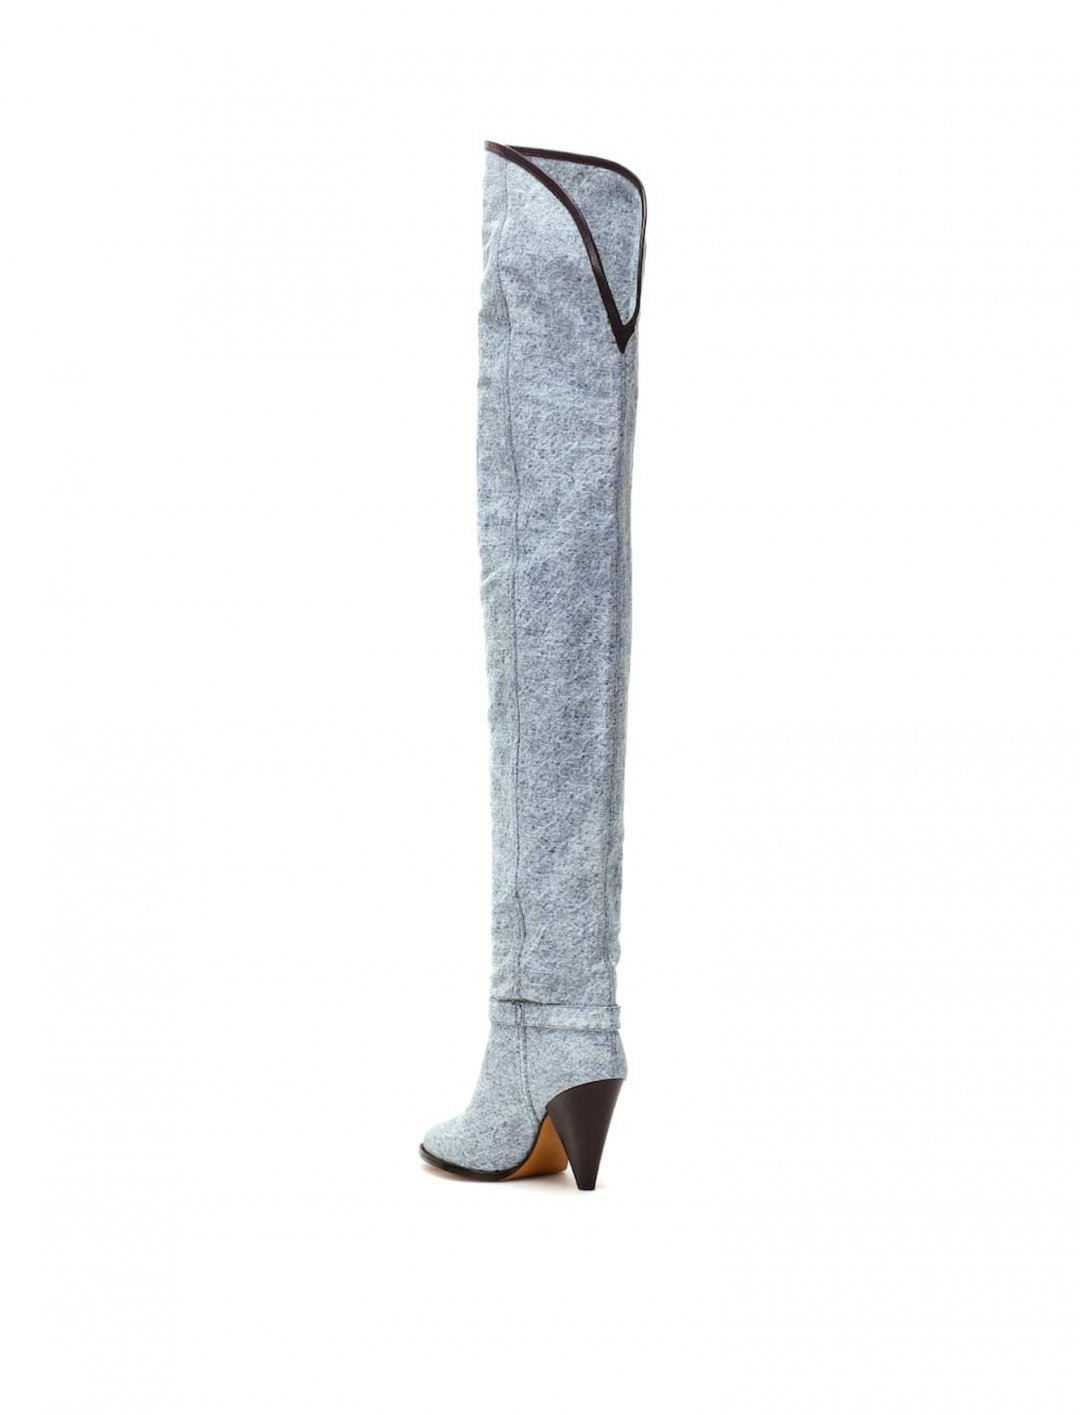 Denim Over-The-Knee Boots Shoes Isabel Marant